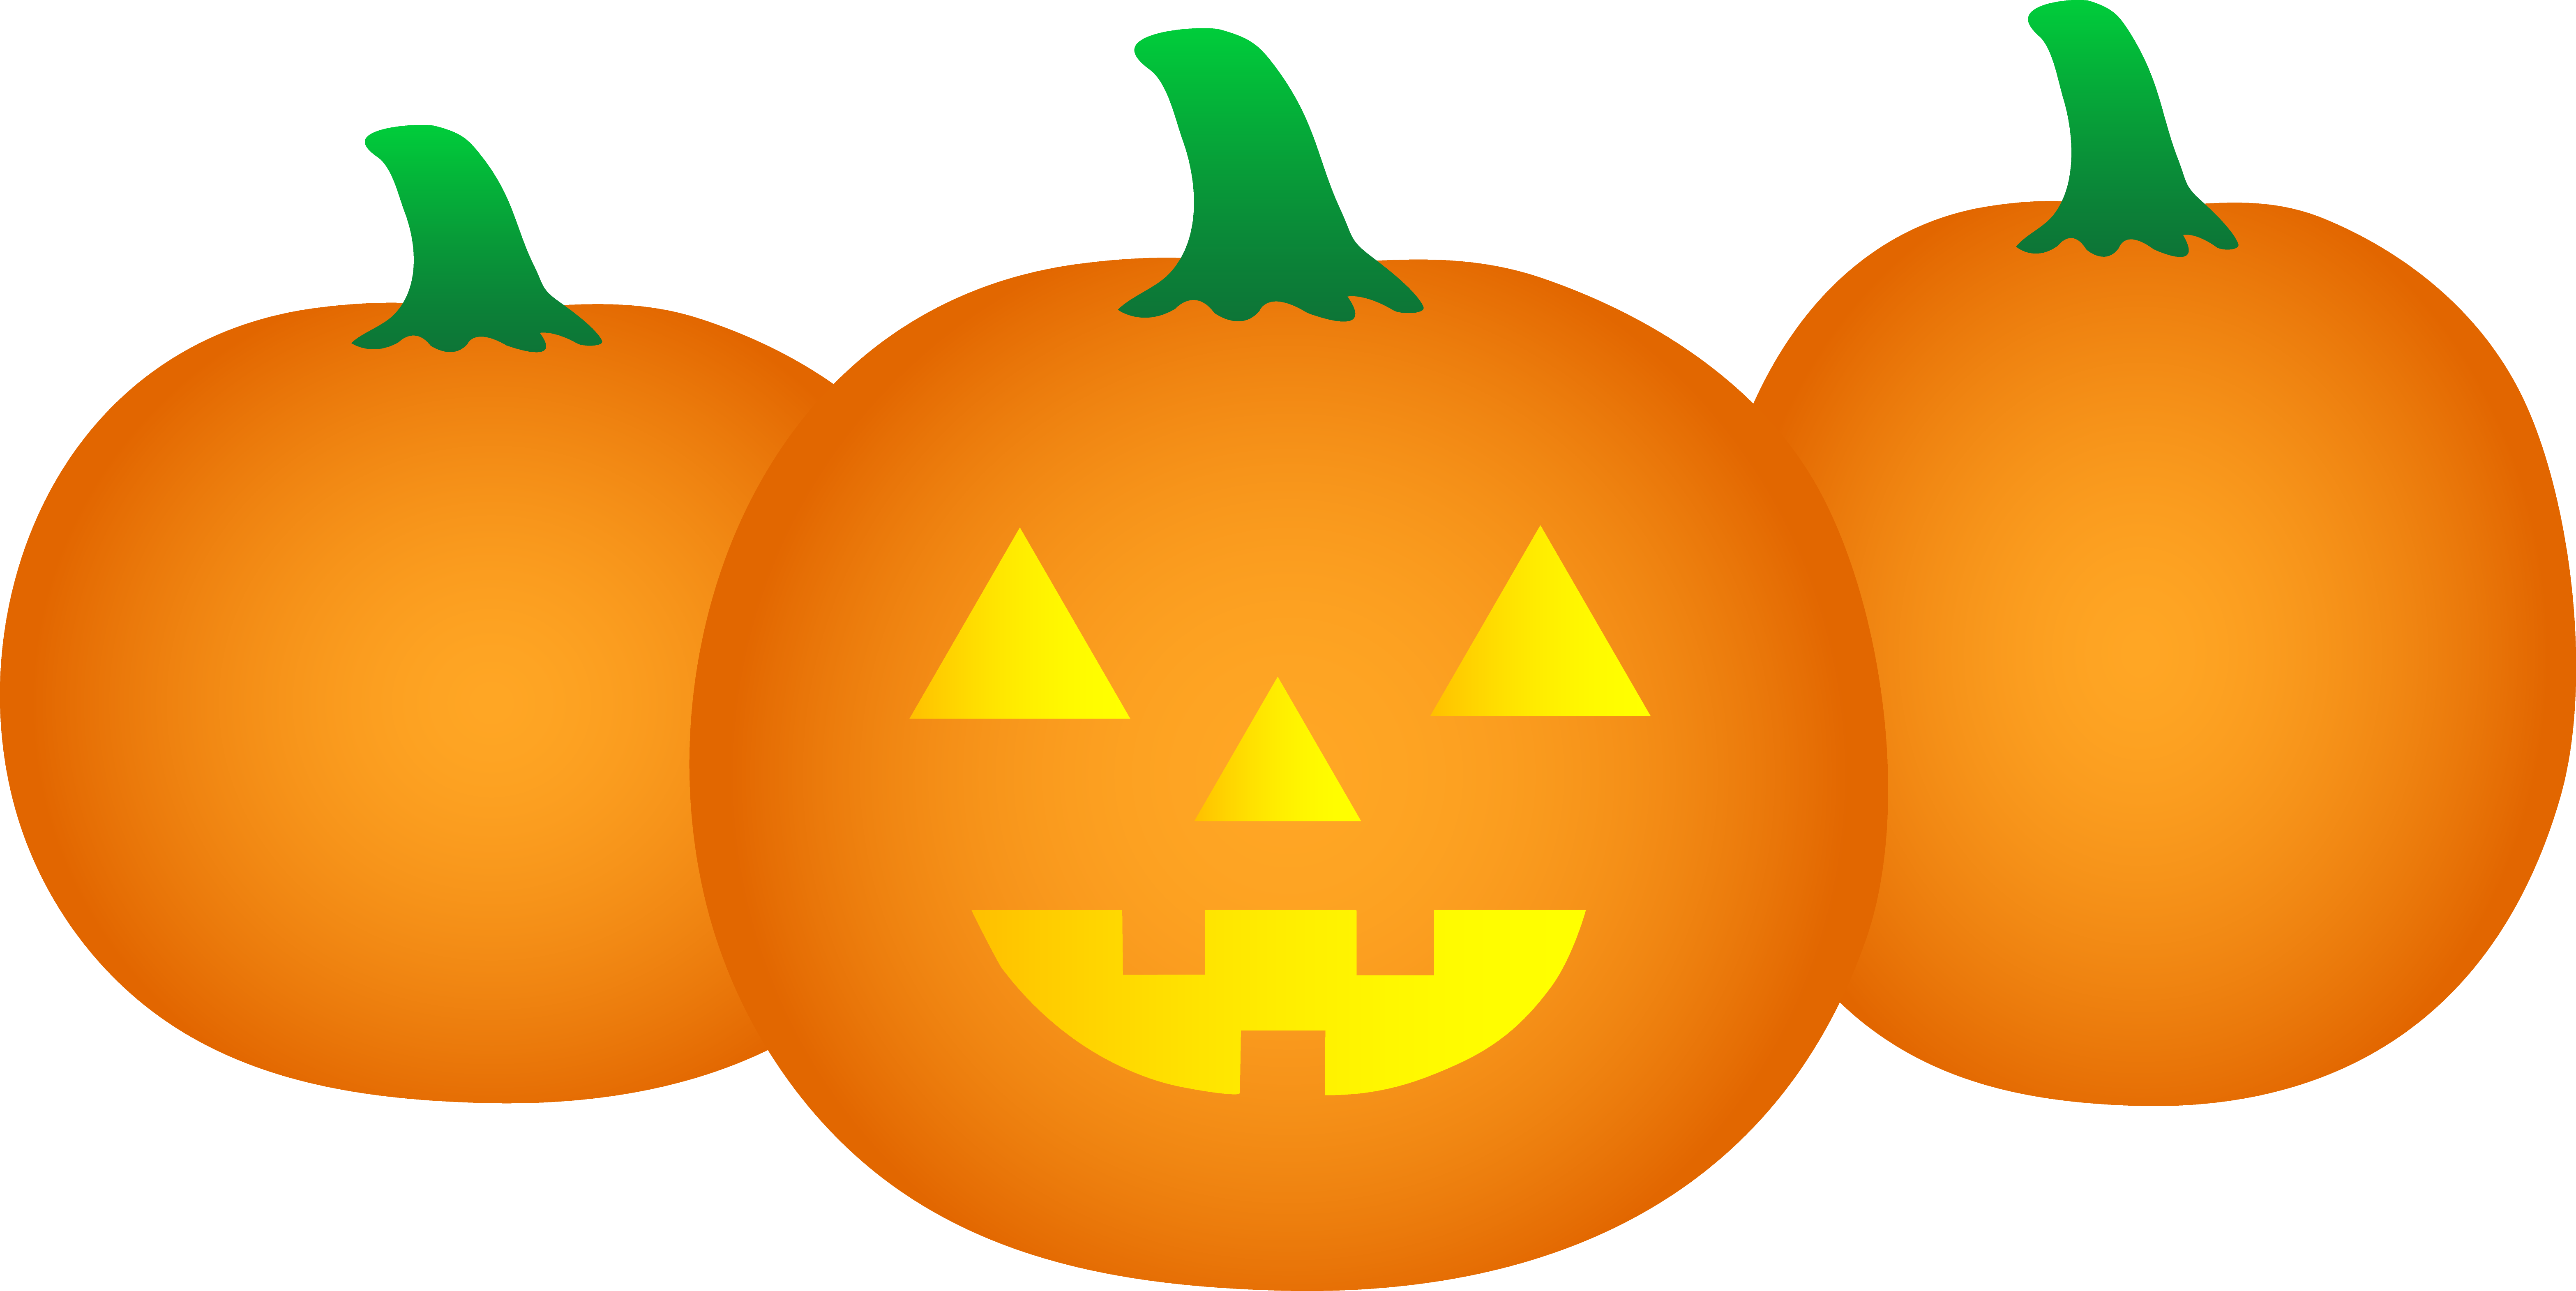 3 pumpkins clipart image freeuse download Three Halloween Pumpkins - Free Clip Art image freeuse download